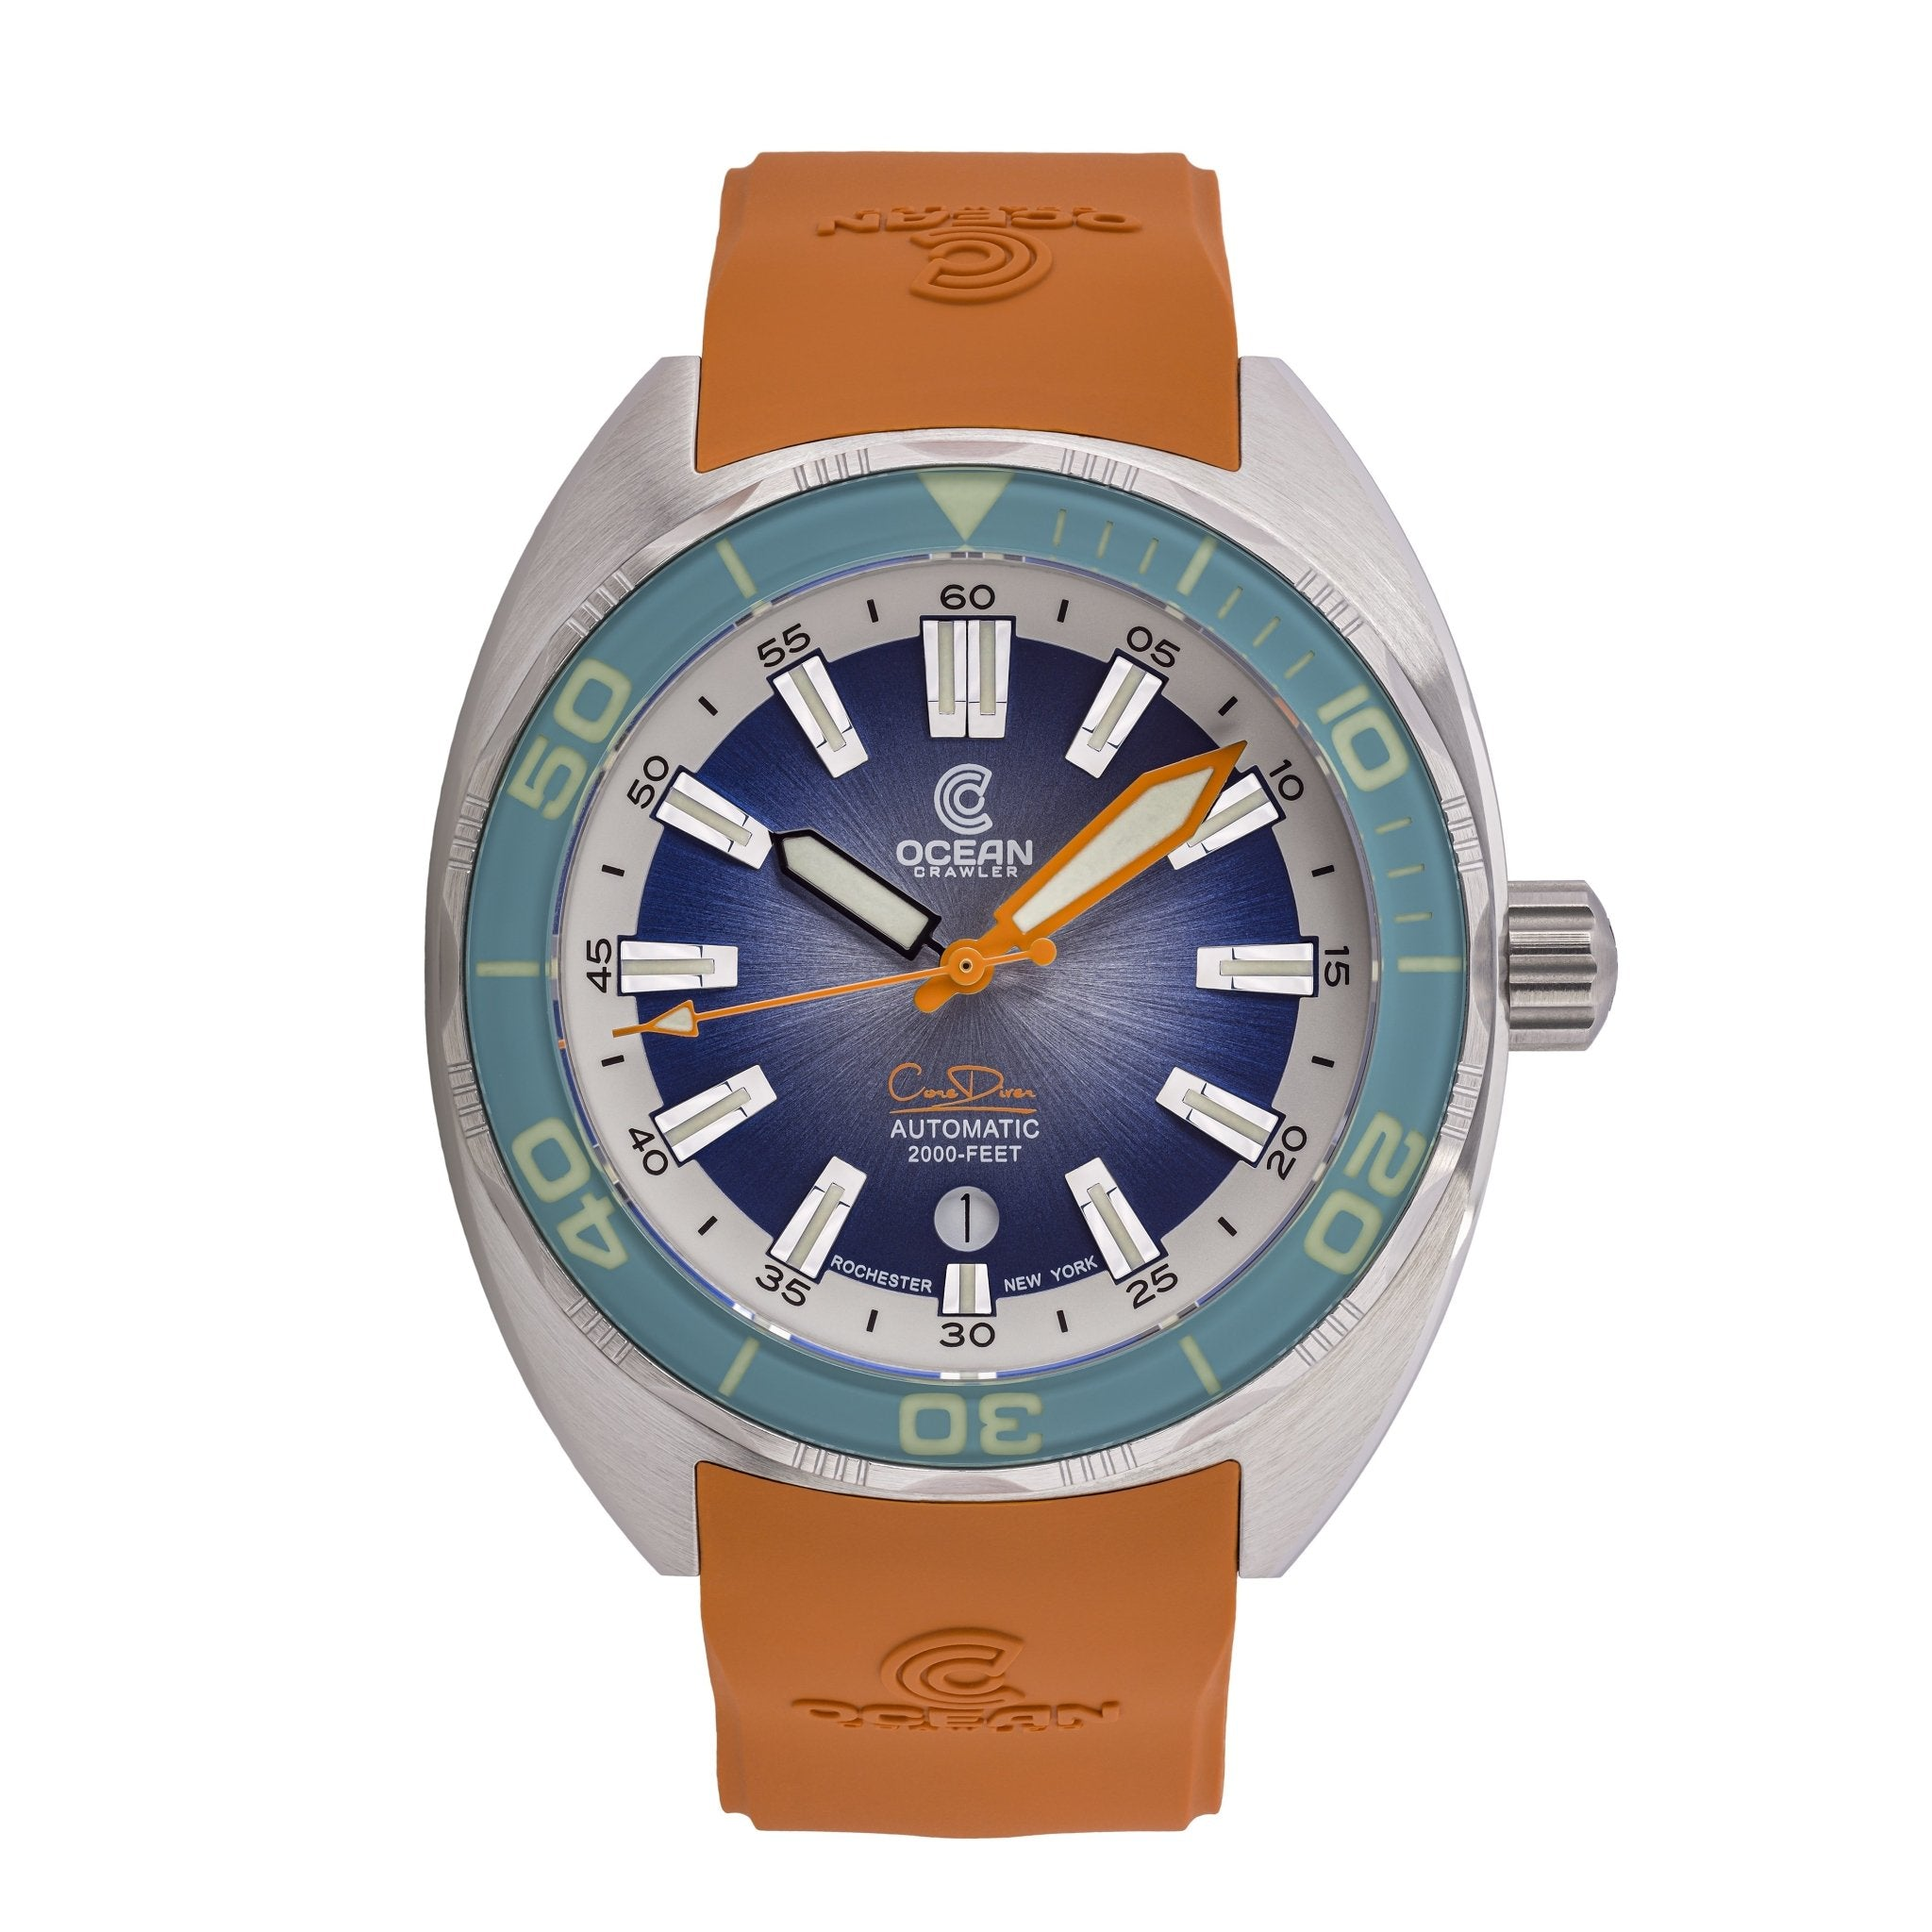 Ocean Crawler Core Diver - Aqua/Gradient Blue V3 - Ocean Crawler Watch Co.